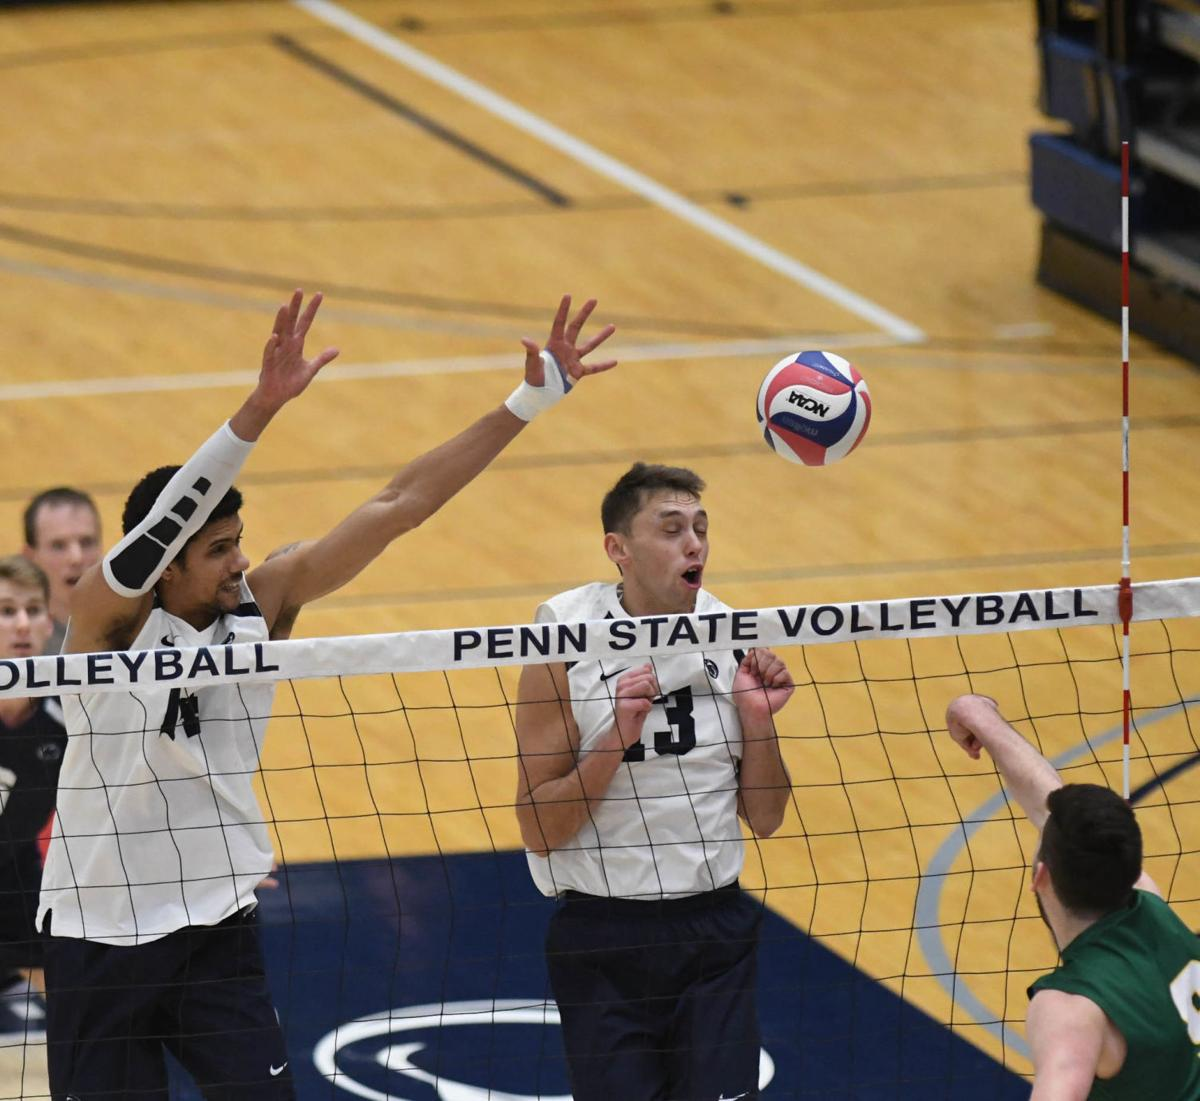 Penn State men's volleyball faces NJIT and Princeton ...